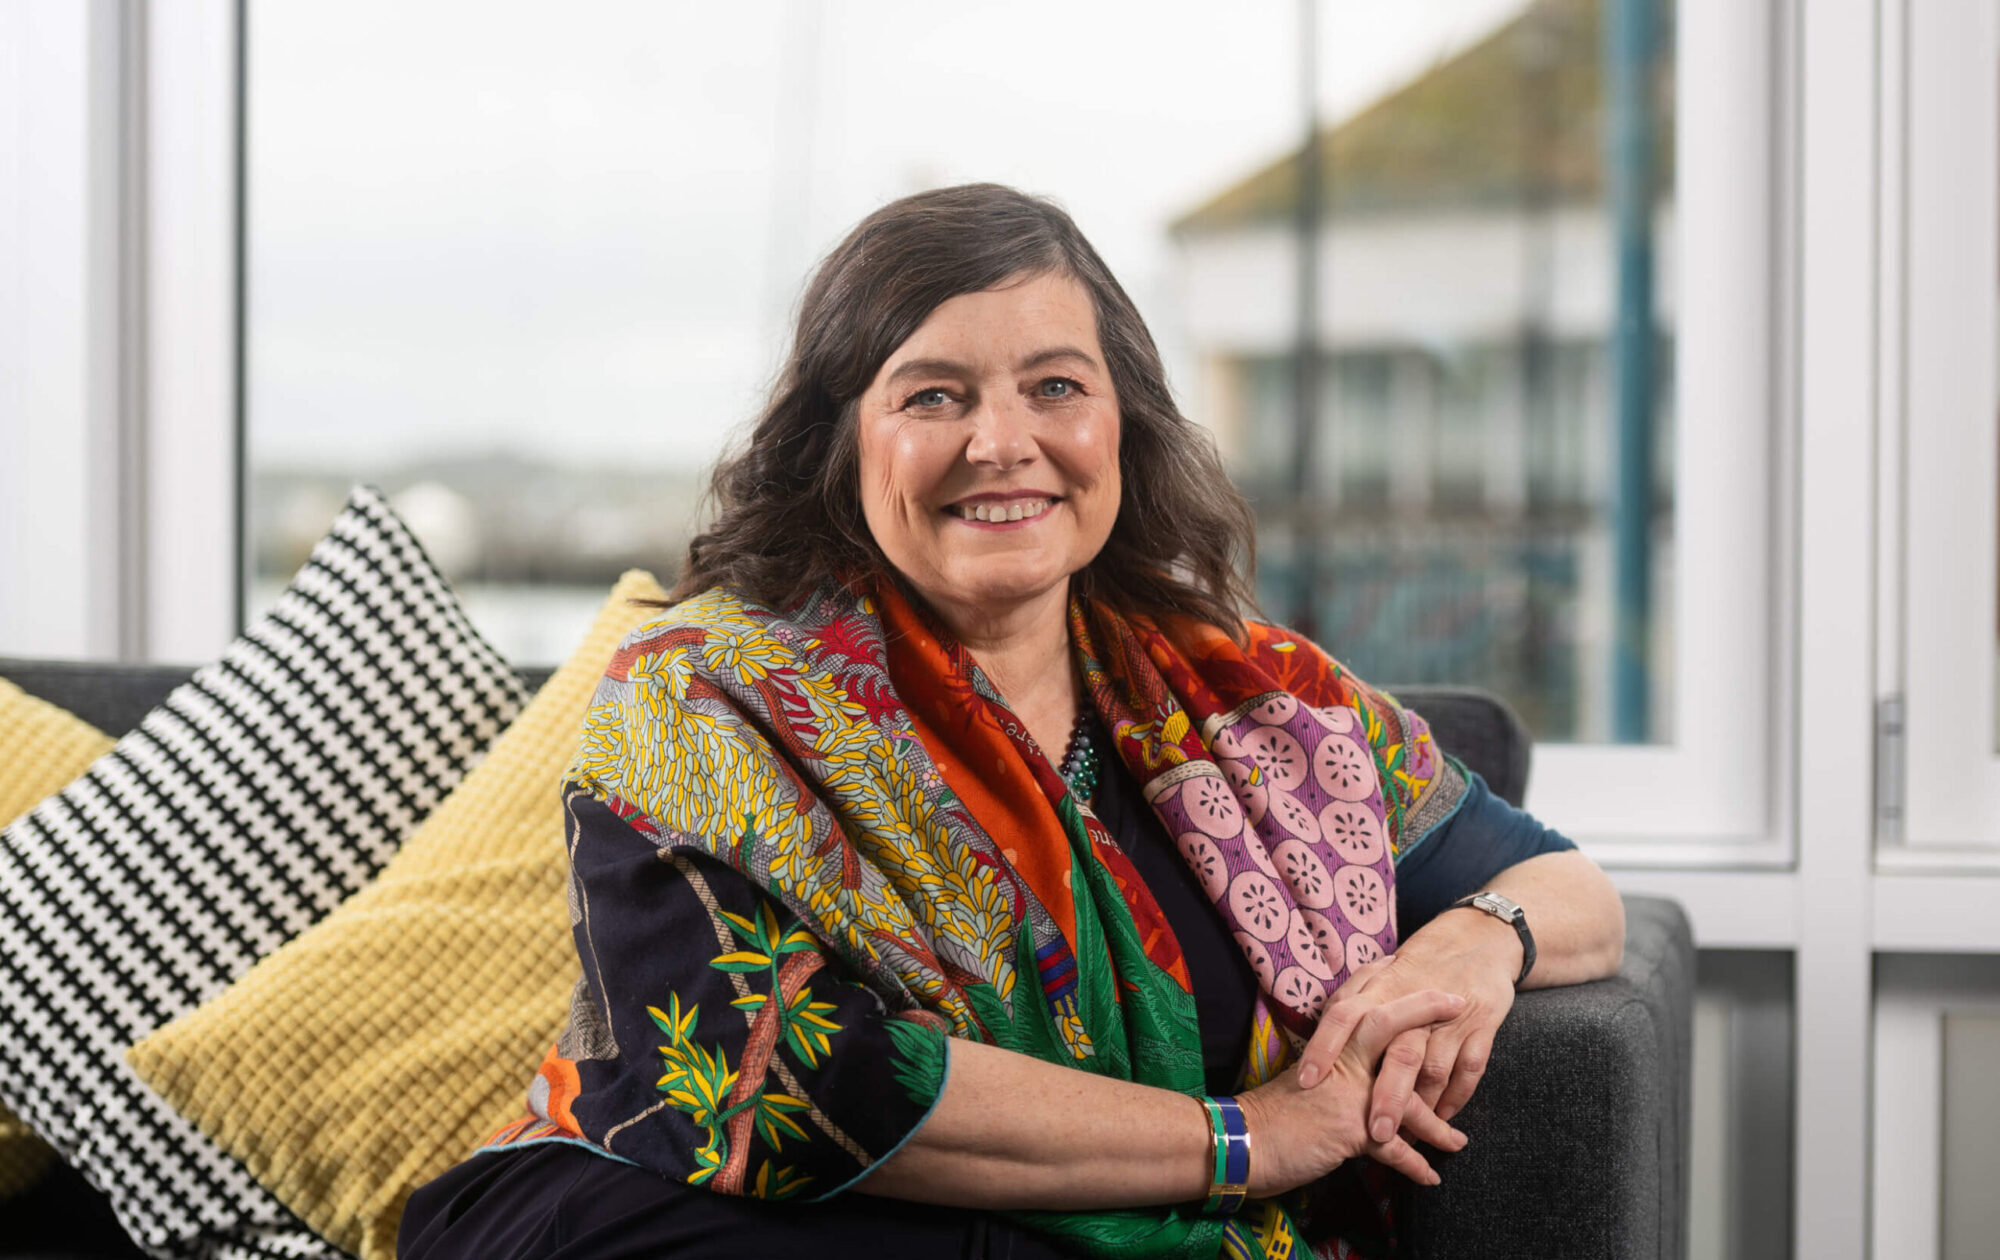 Anne Boden: Pandemic has accelerated move to cashless by 10 years